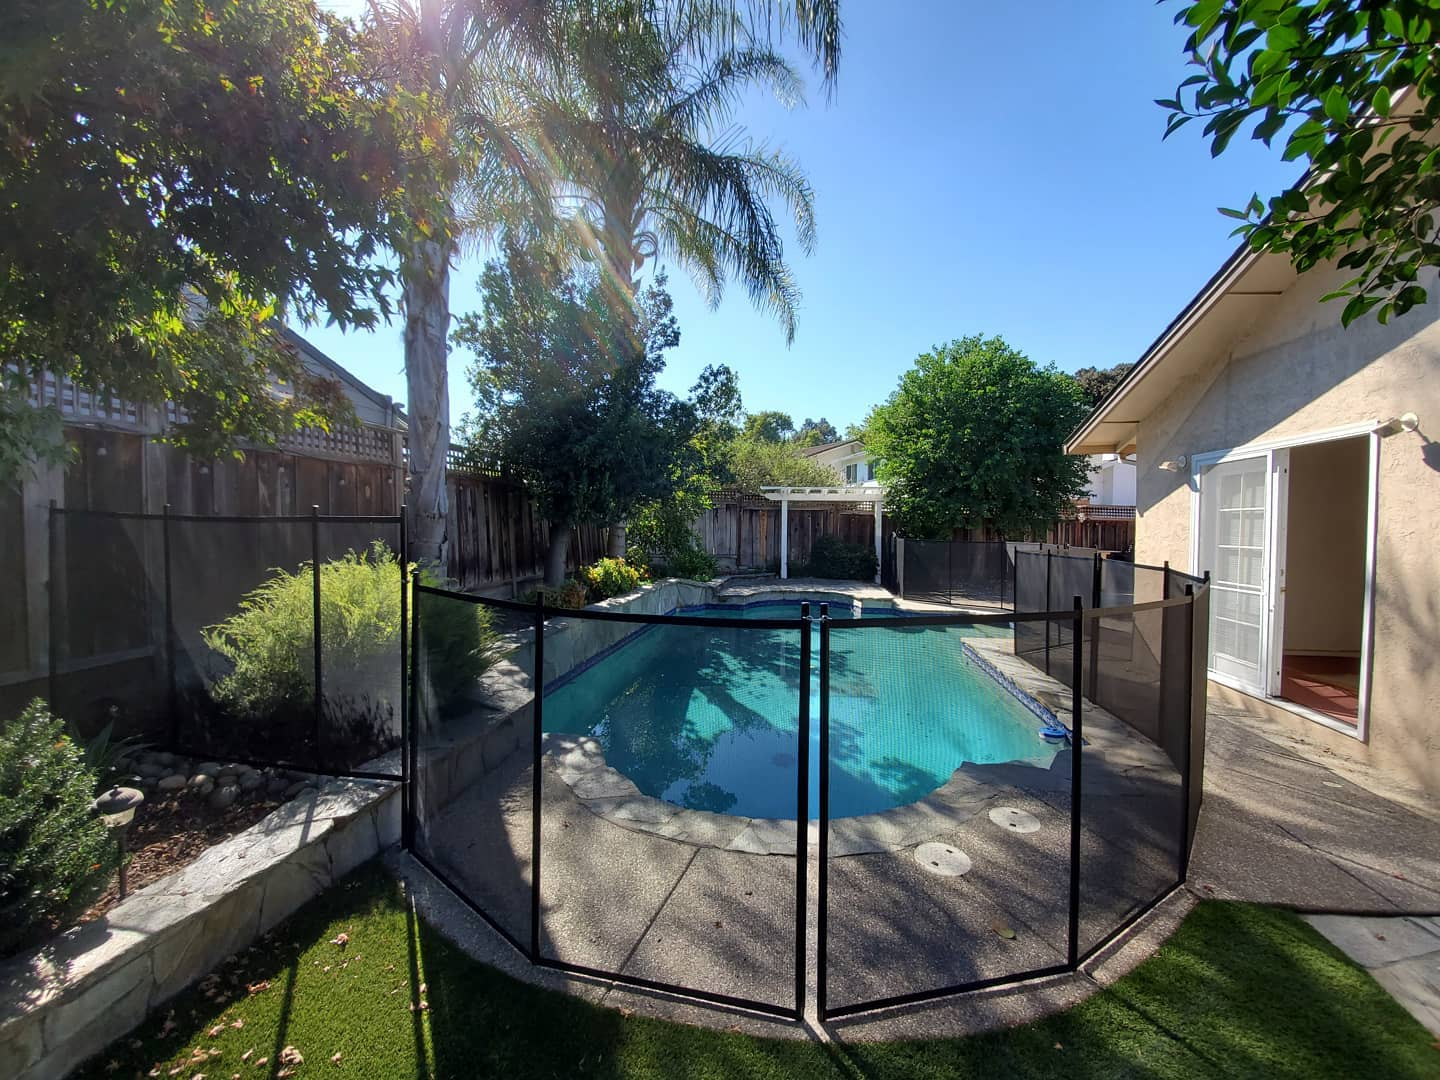 pool fence installations in Concord, CA